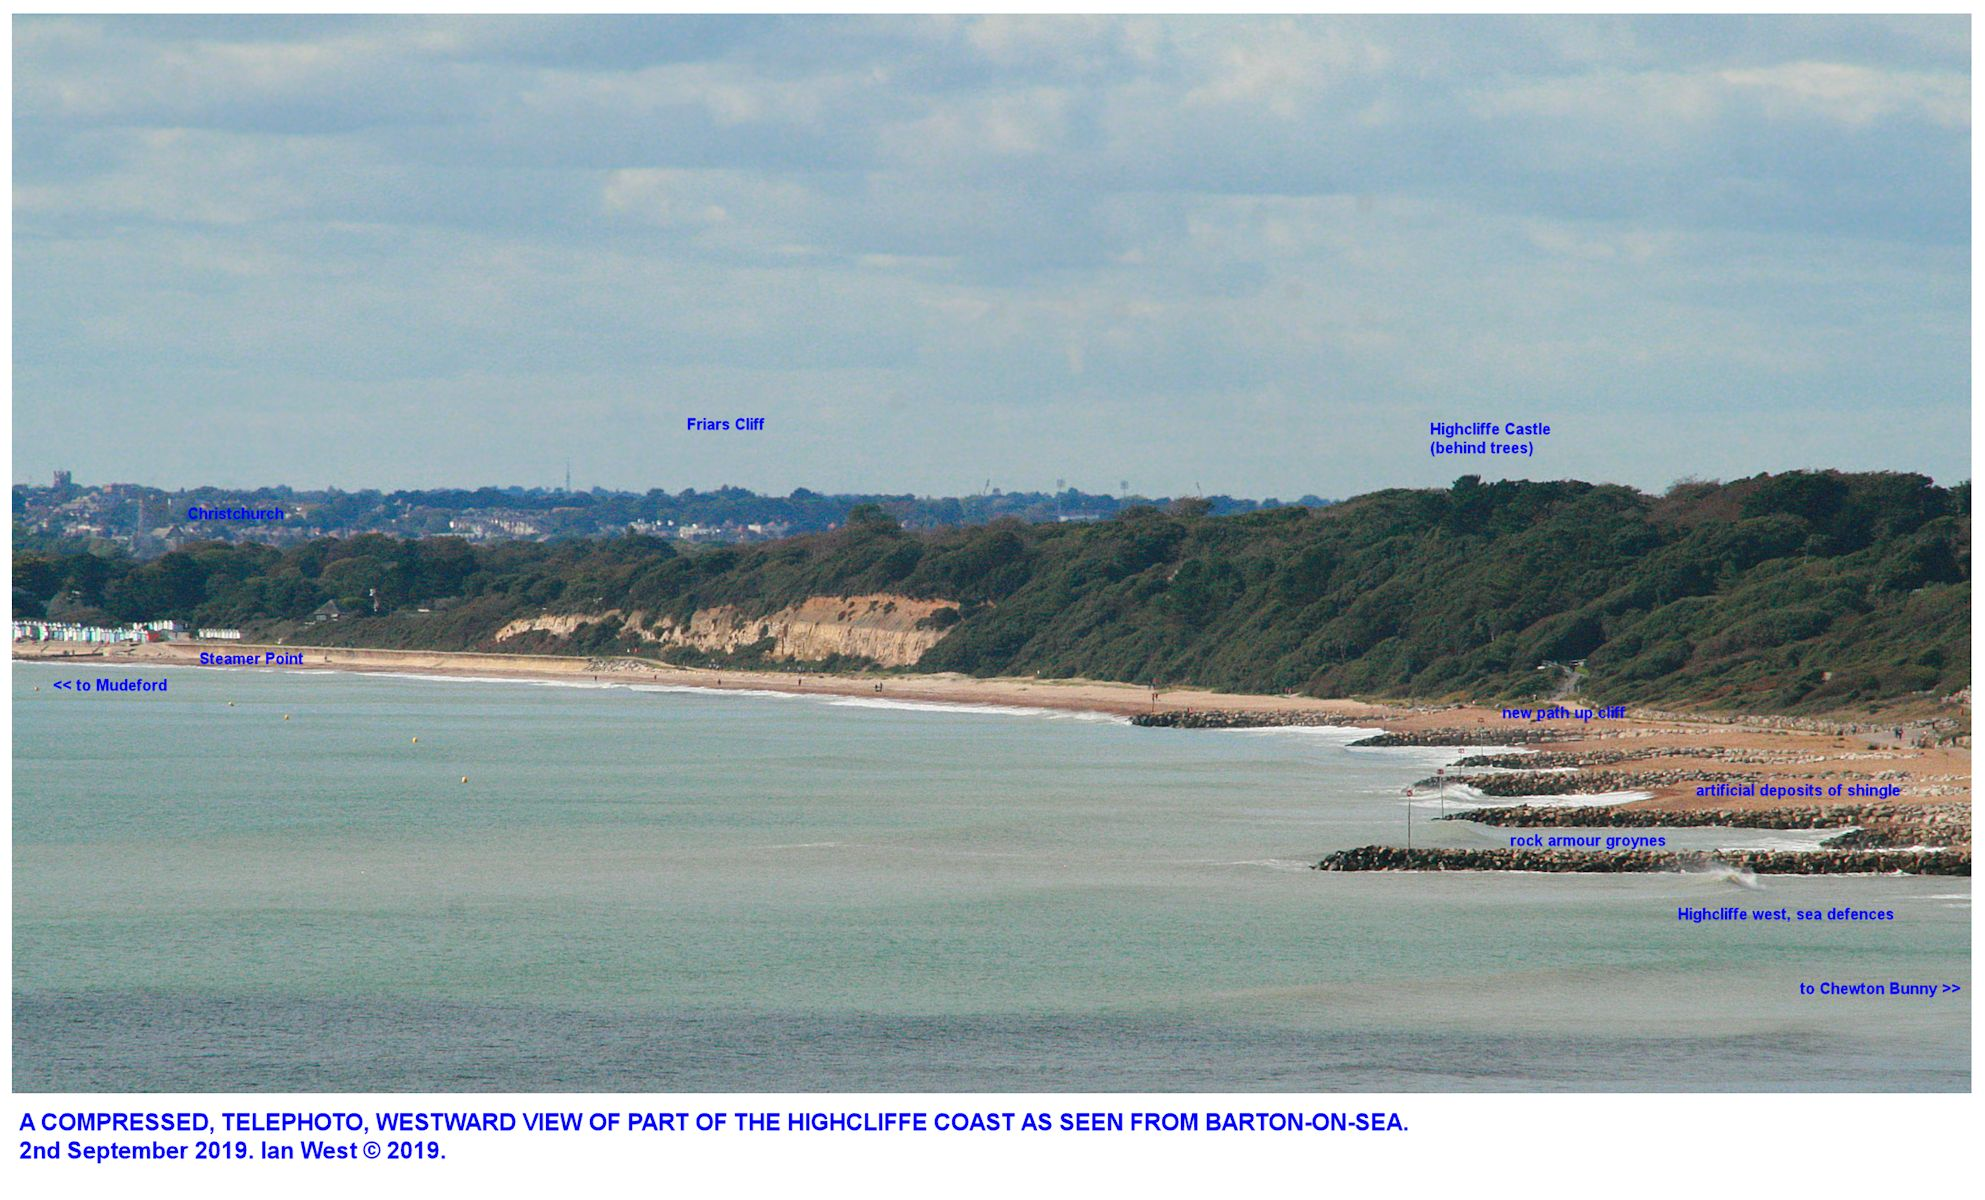 A distant view from Barton-on-Sea of Highcliffe groynes, the forested cliffs near Highcliffe Castle, and Friars Cliff etc. as seen on the 2nd October 2019, by Ian West